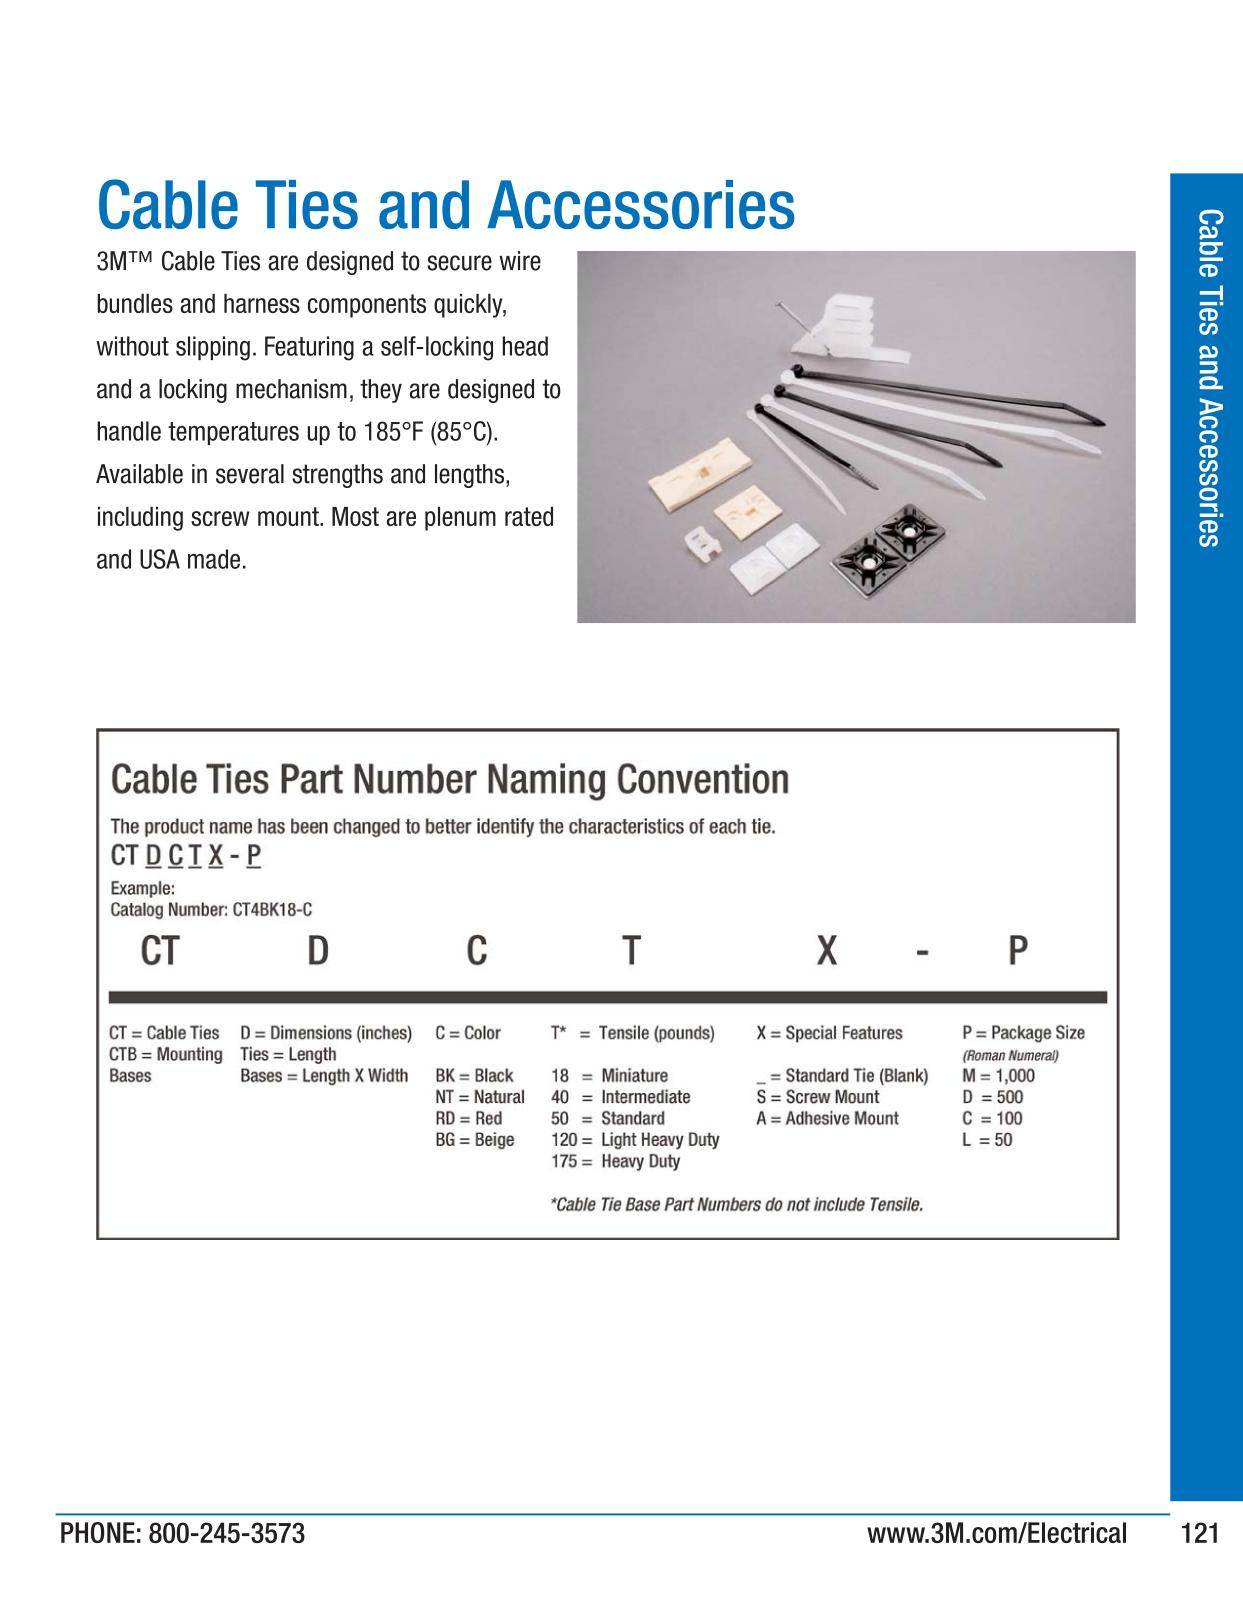 121?RelId=6.10.6.0.5 lugs and connectors 3m electrical products page 119 Headset Wiring-Diagram Apt at honlapkeszites.co